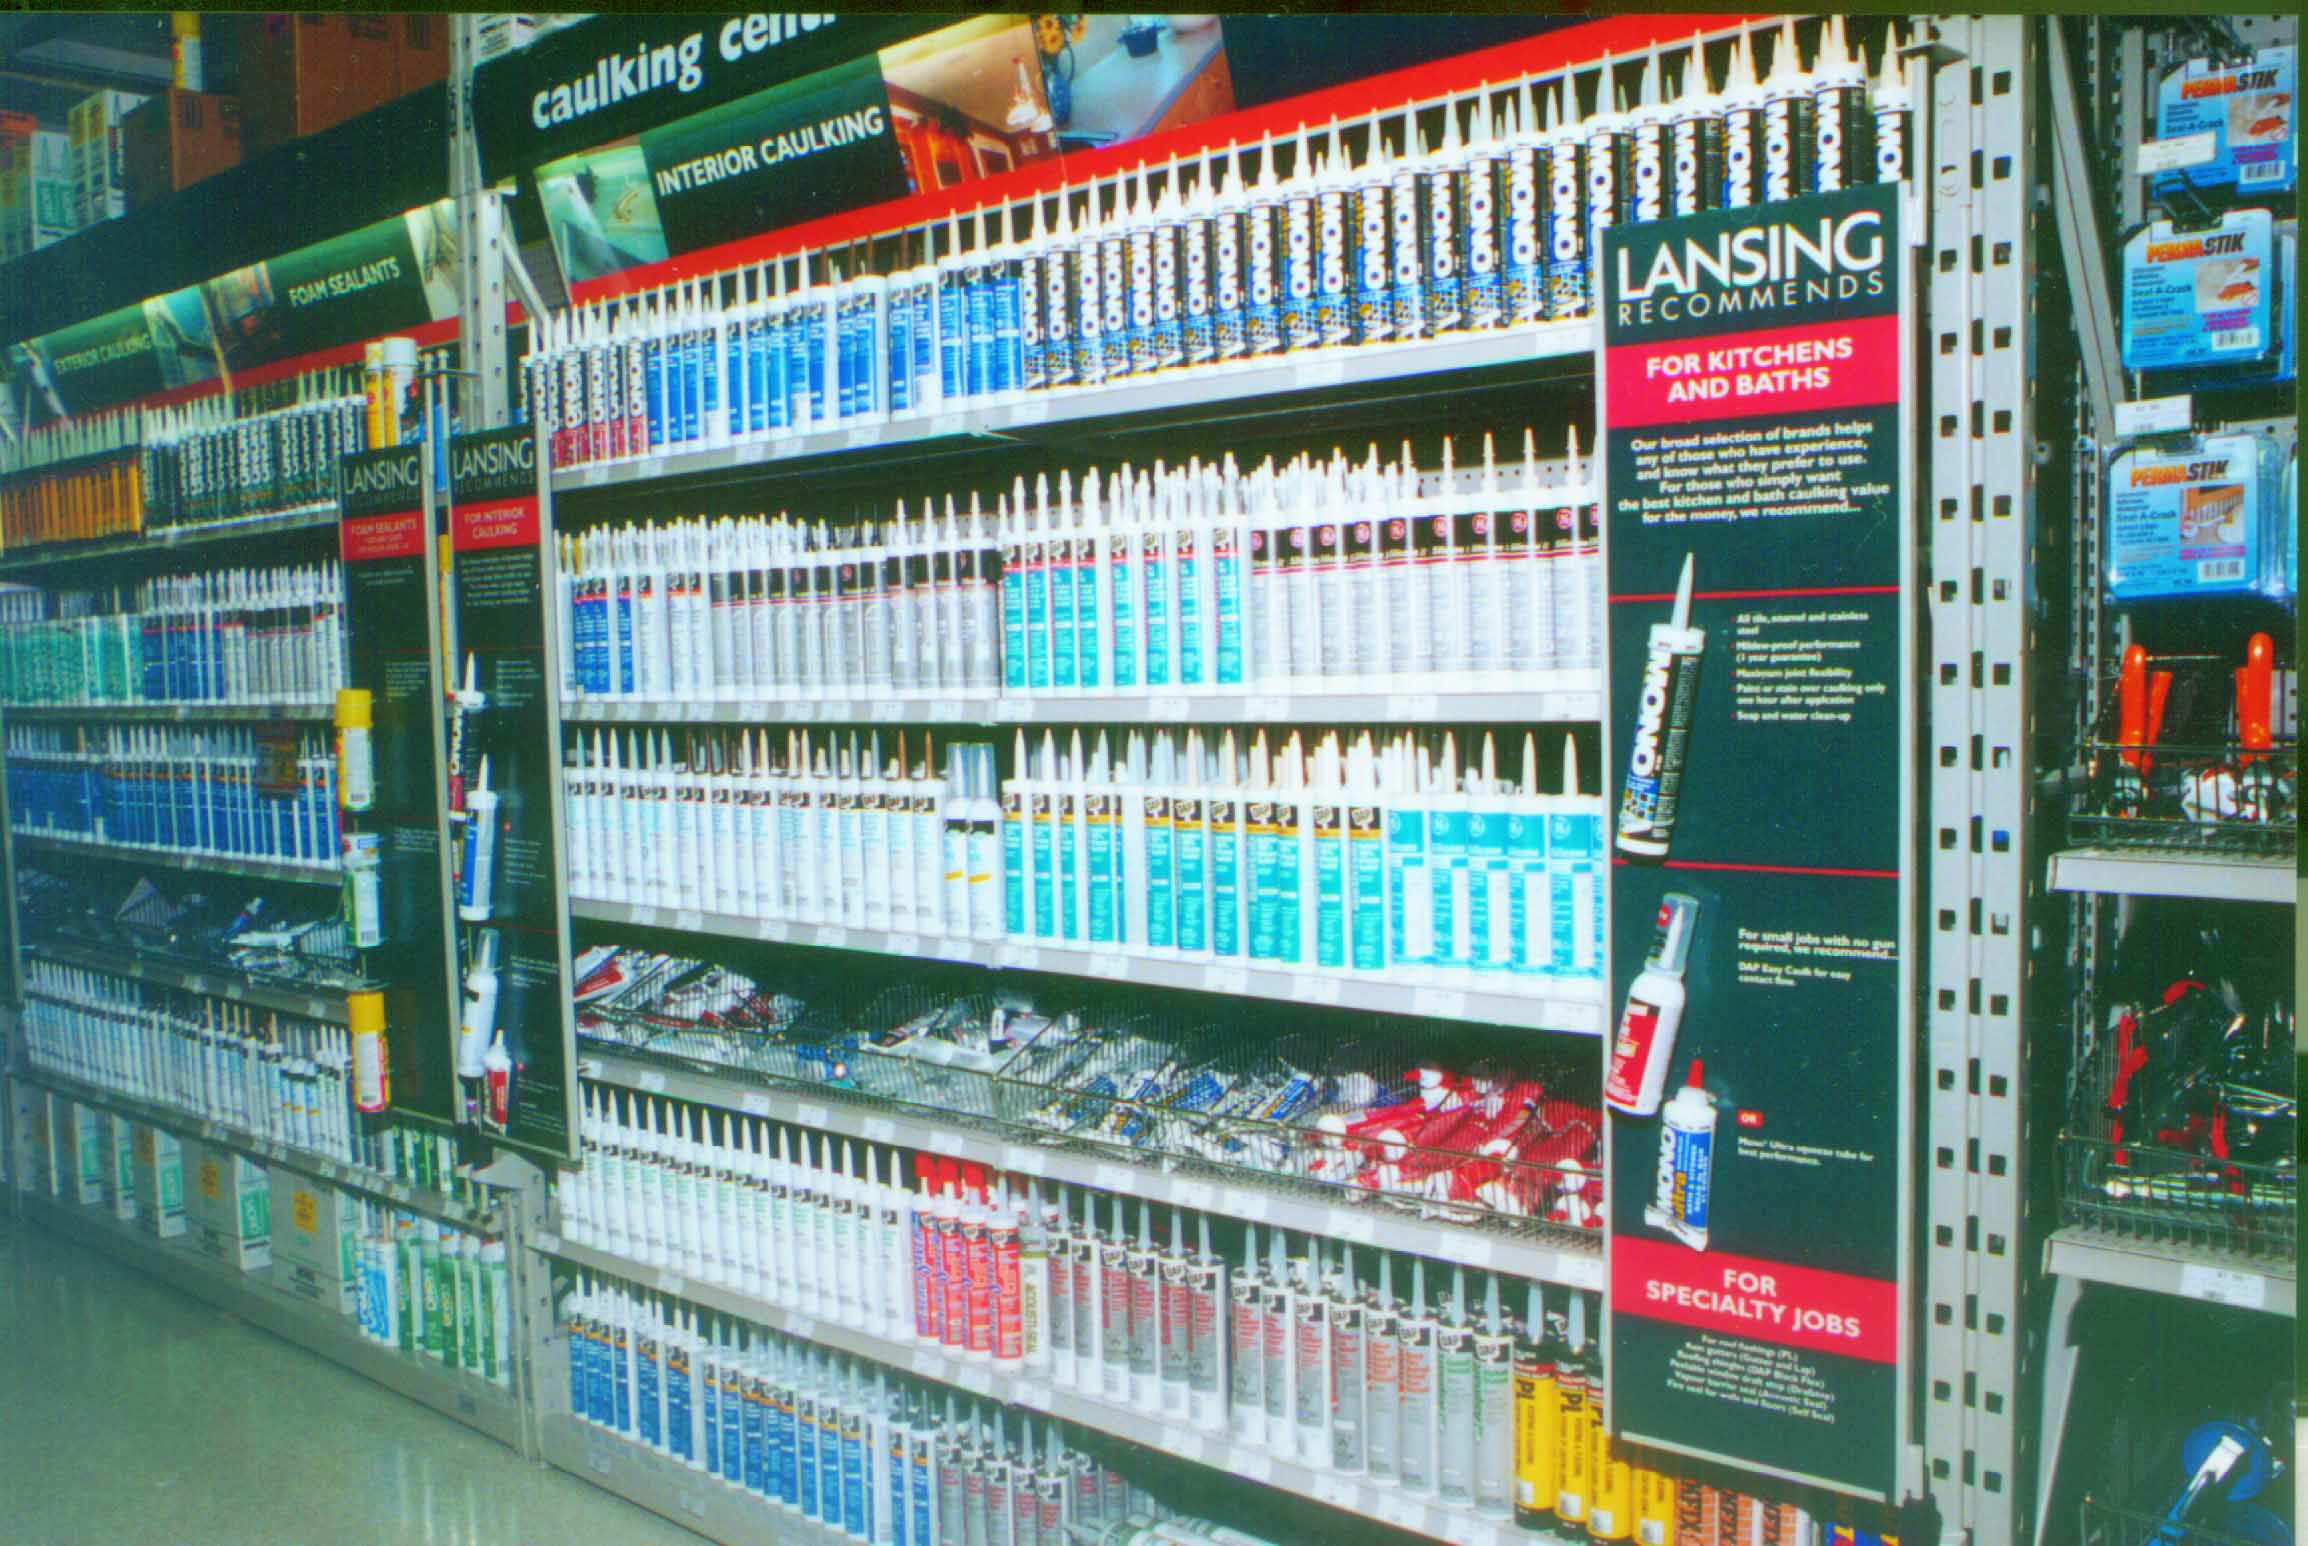 Product Display - caulking